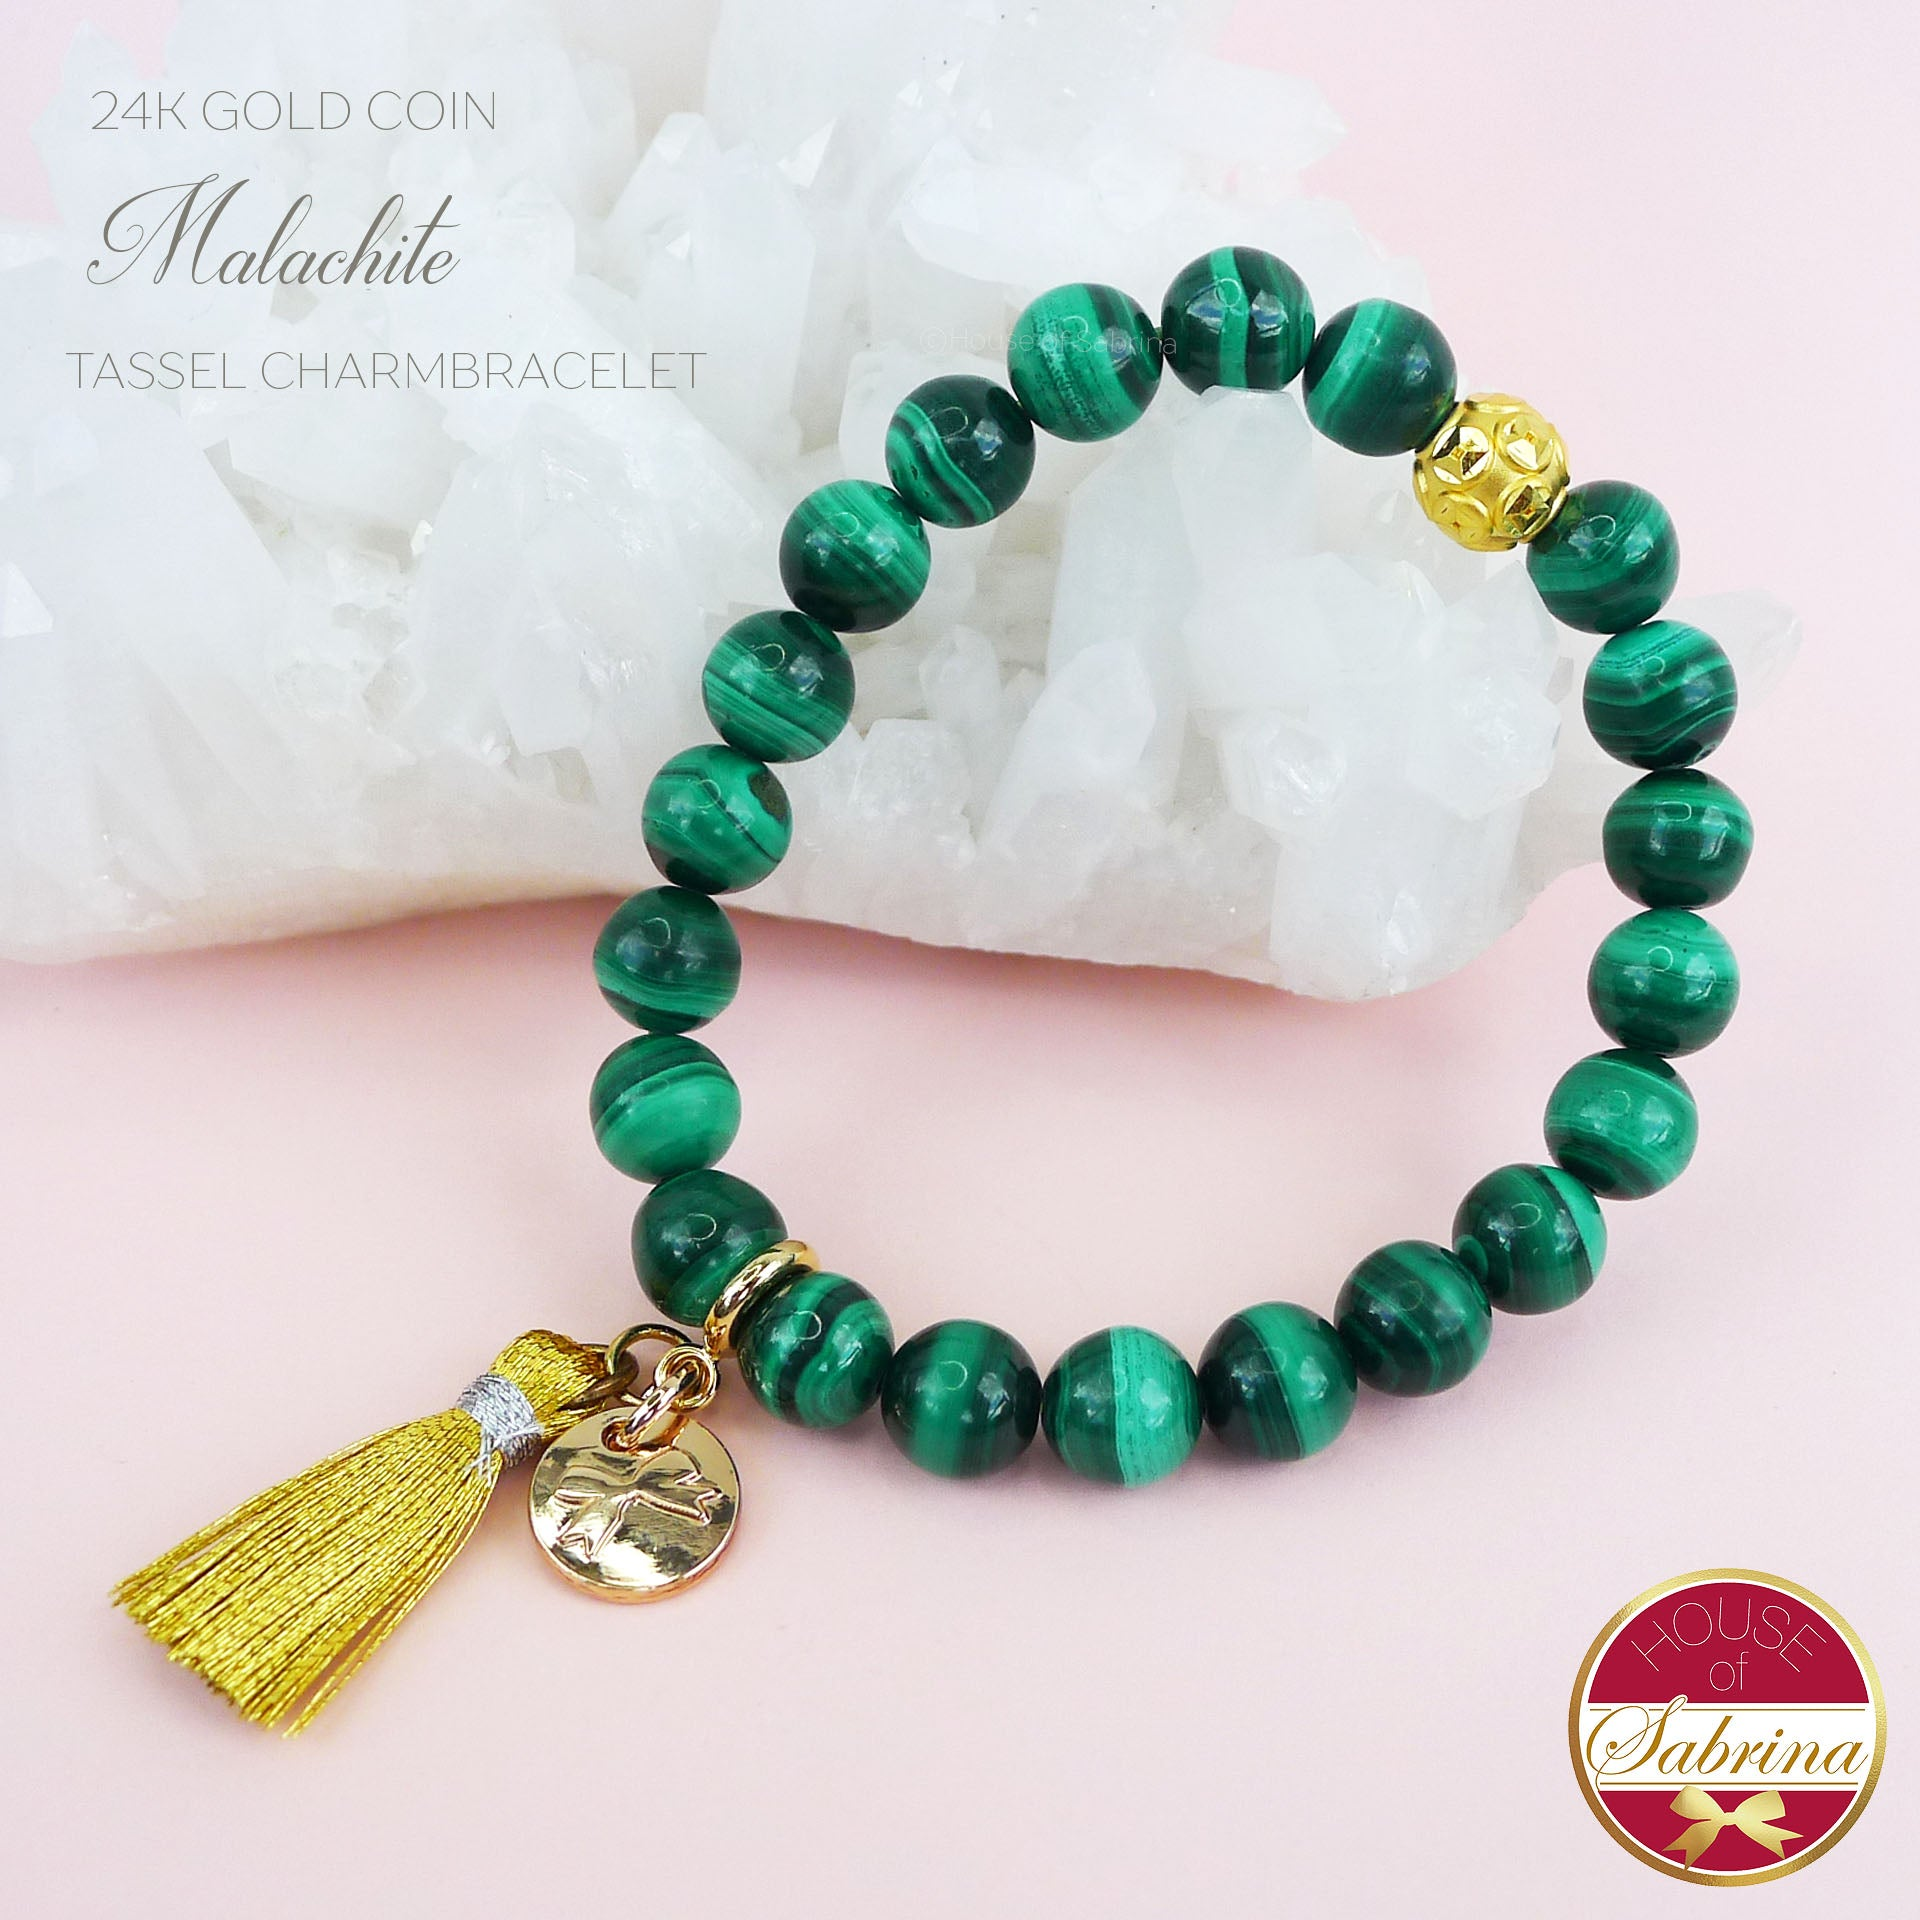 24K GOLD FORTUNE COIN + MALACHITE GEMSTONE TASSEL BRACELET